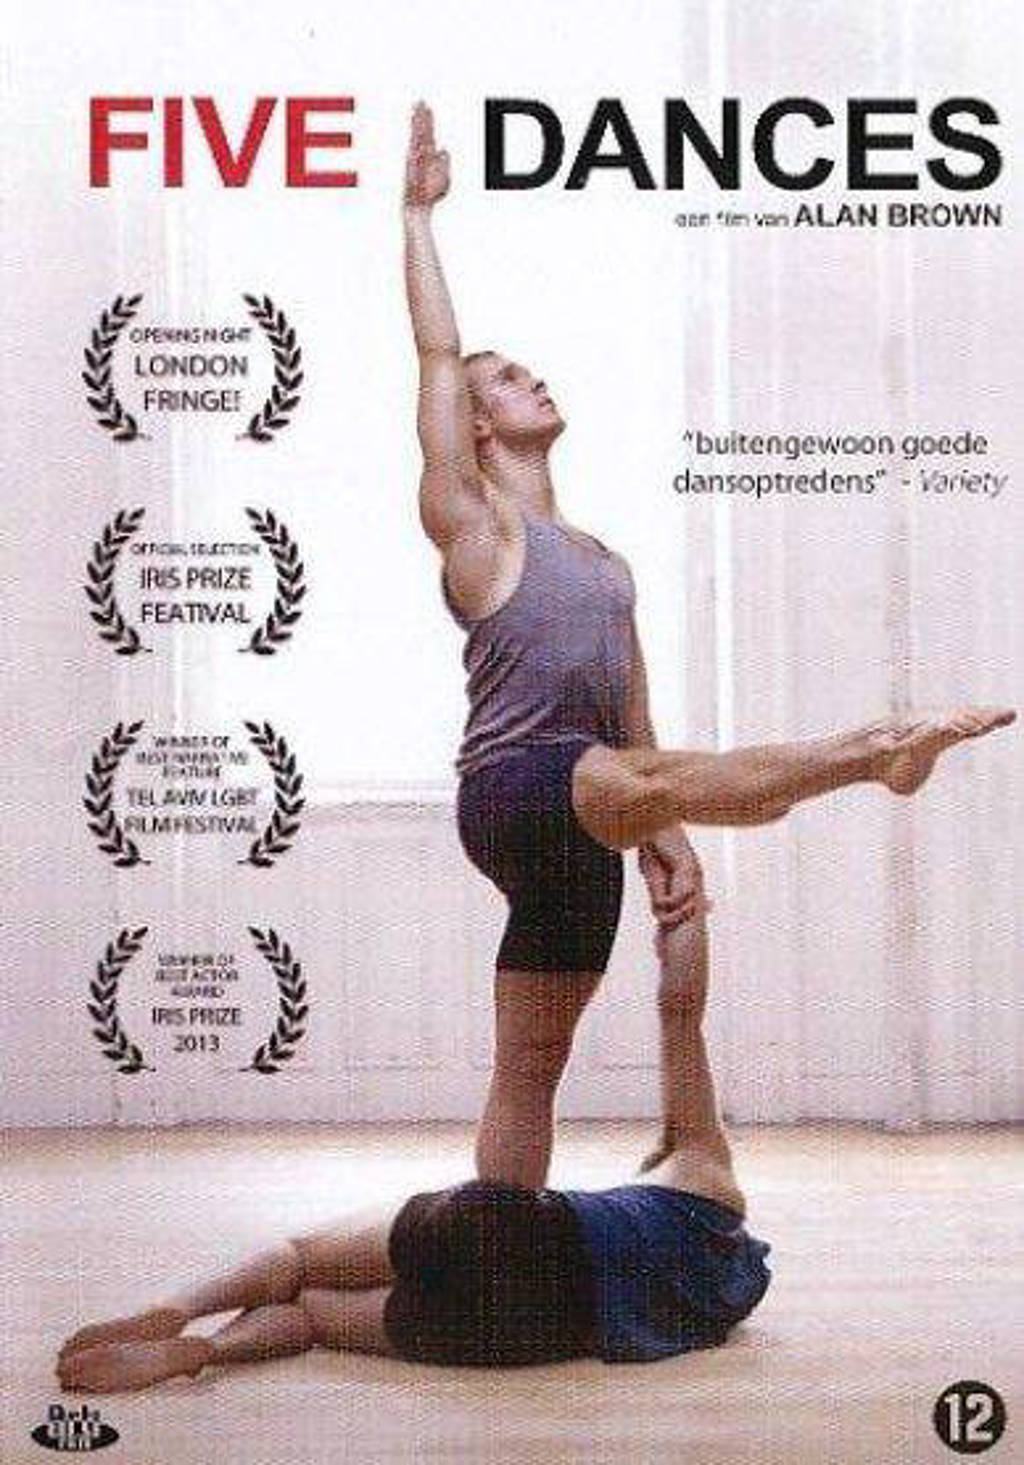 Five dances (DVD)